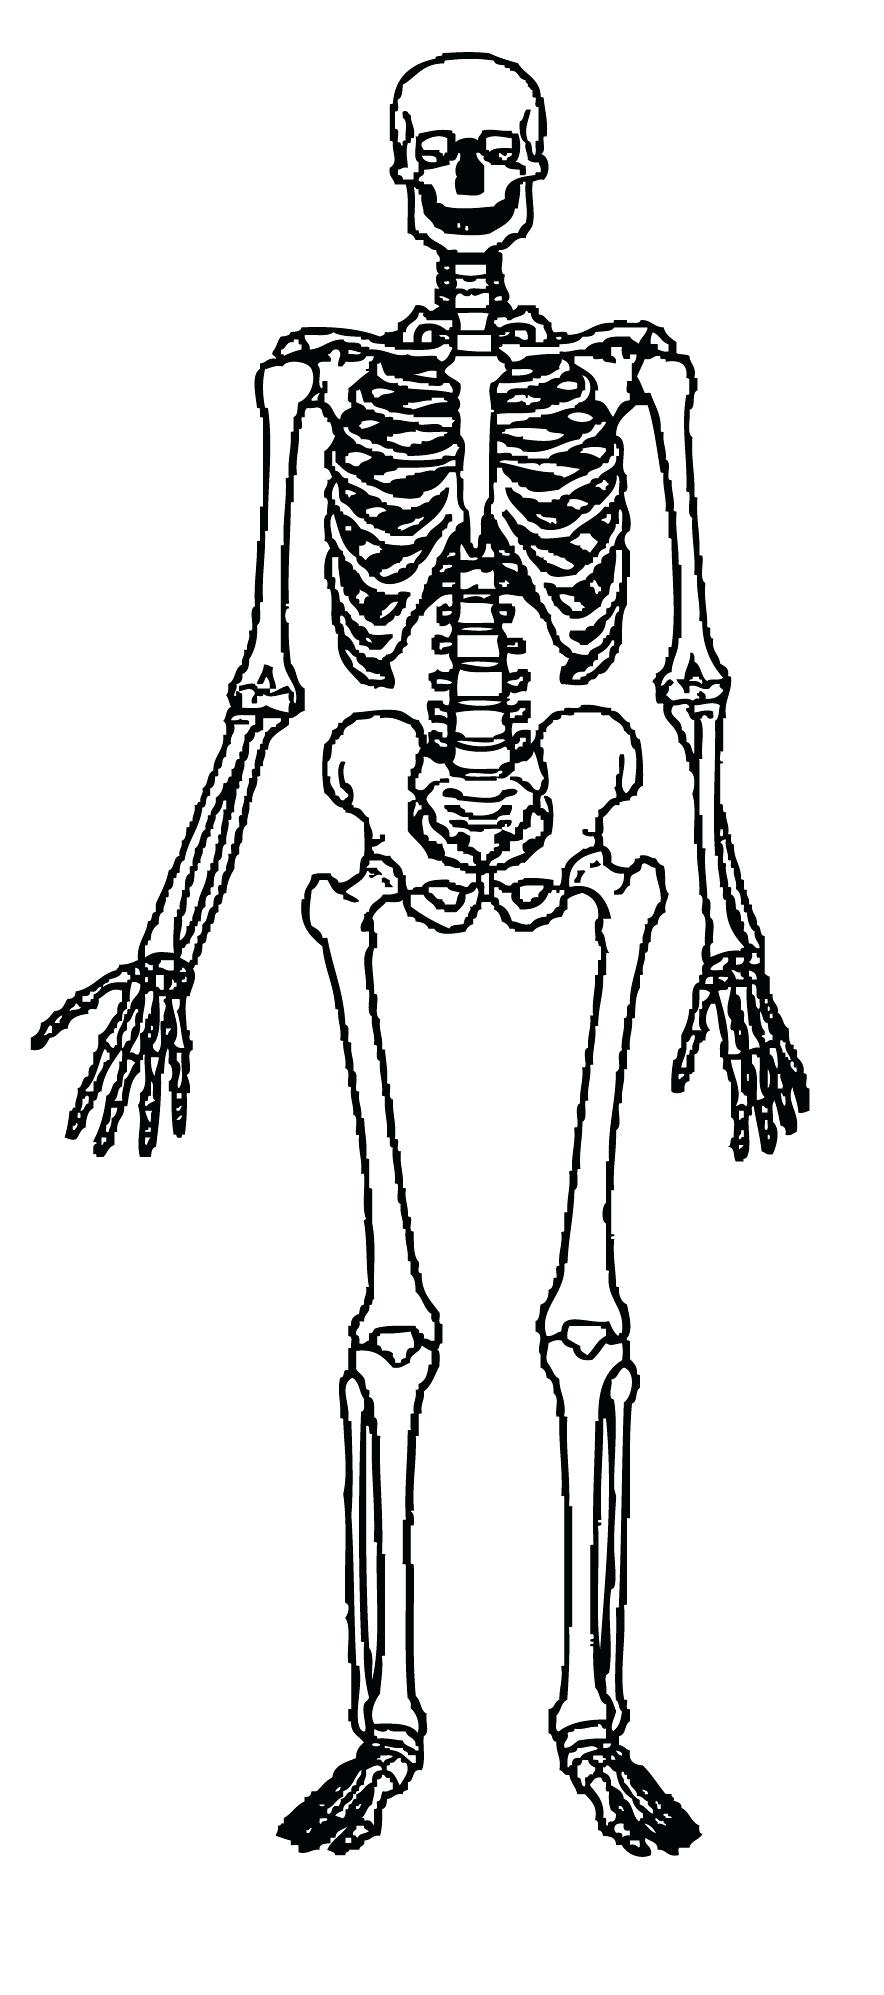 Skeleton Drawing For Kids At Getdrawings Free For Personal Use